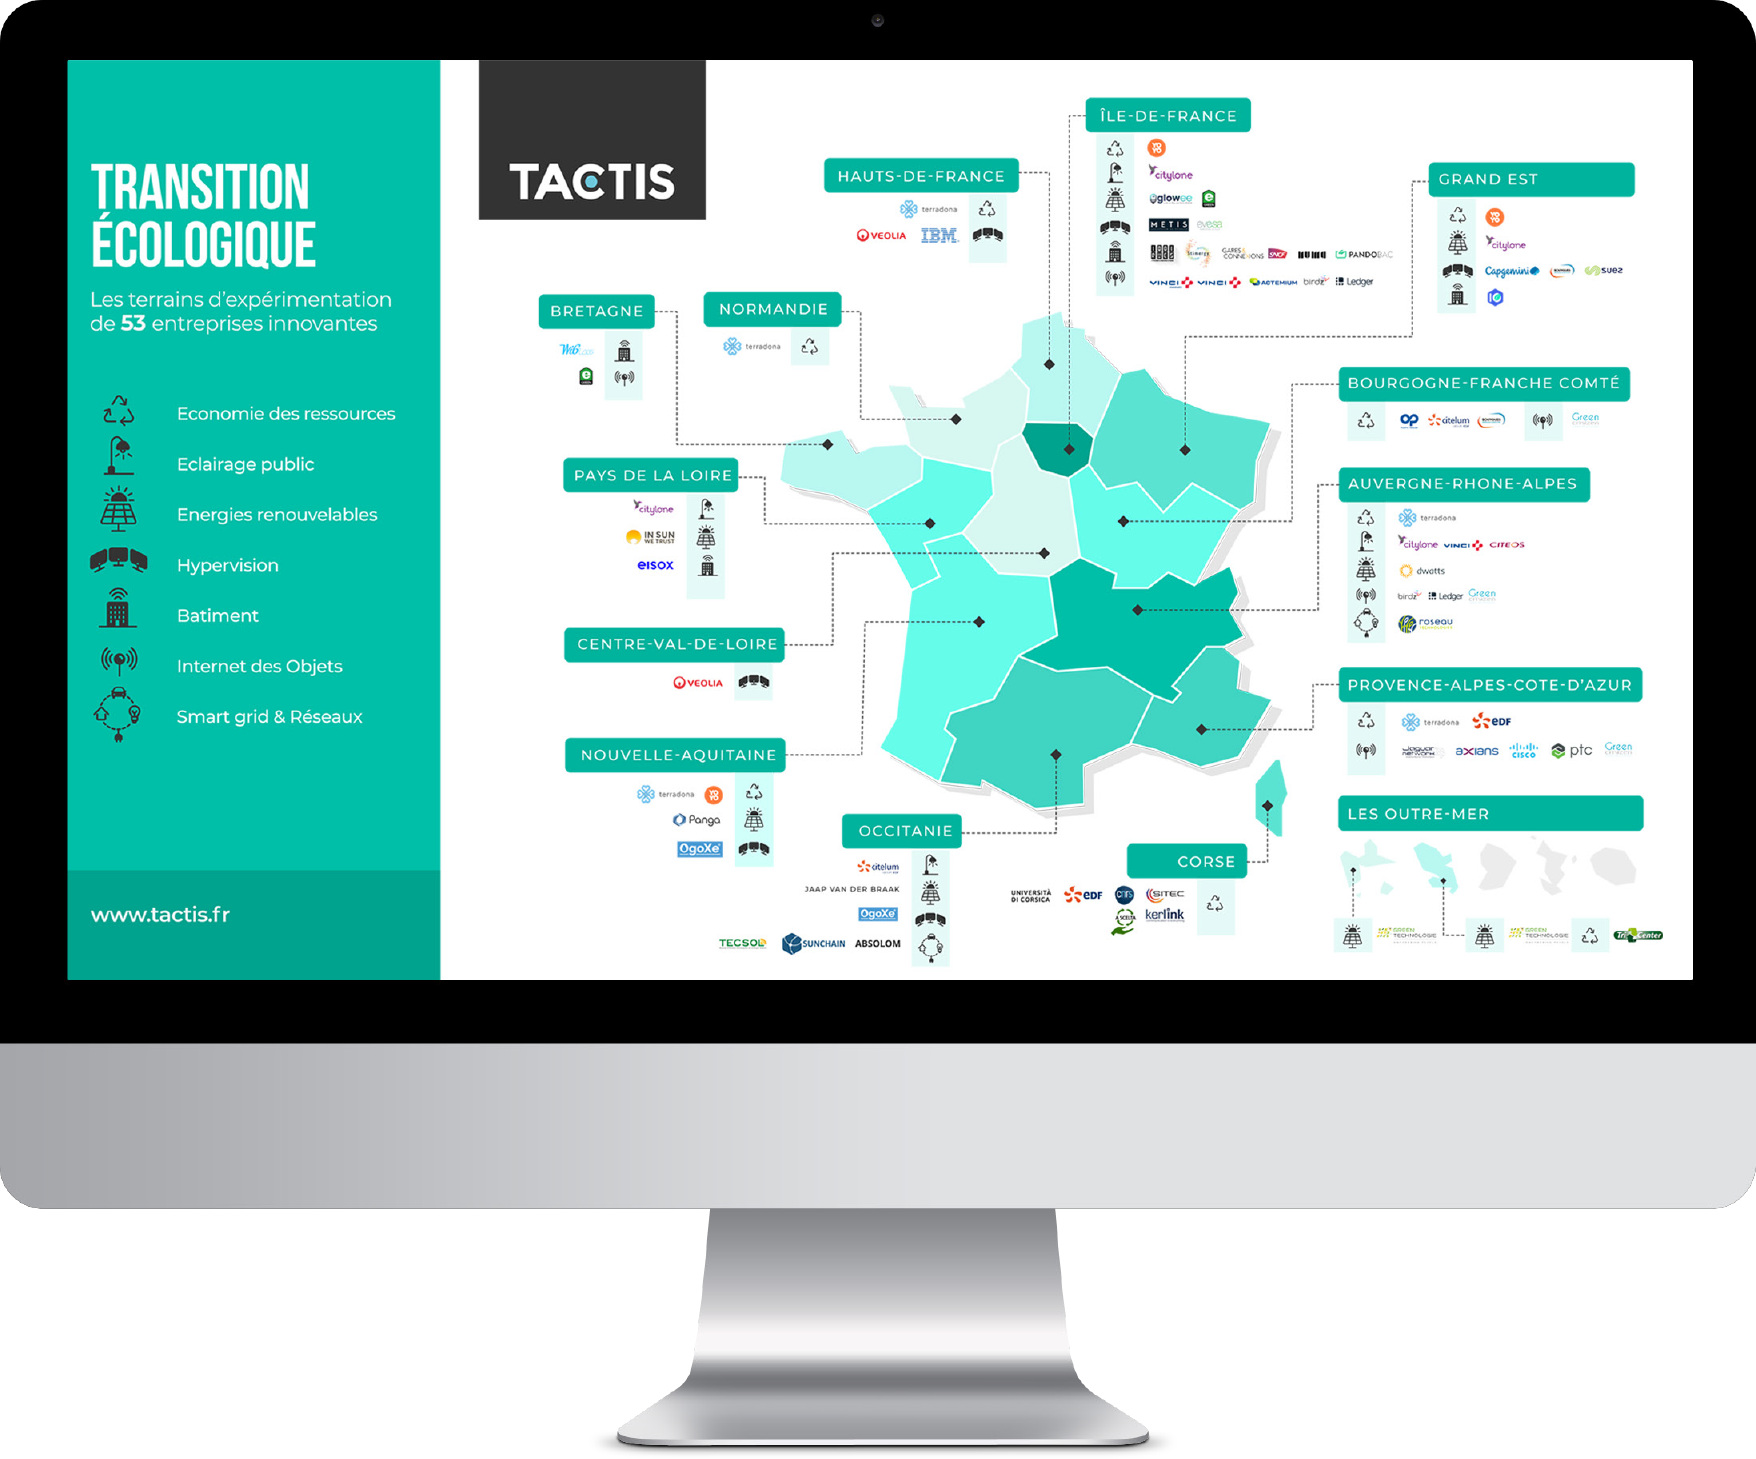 Tactis - Base innovation territoriale